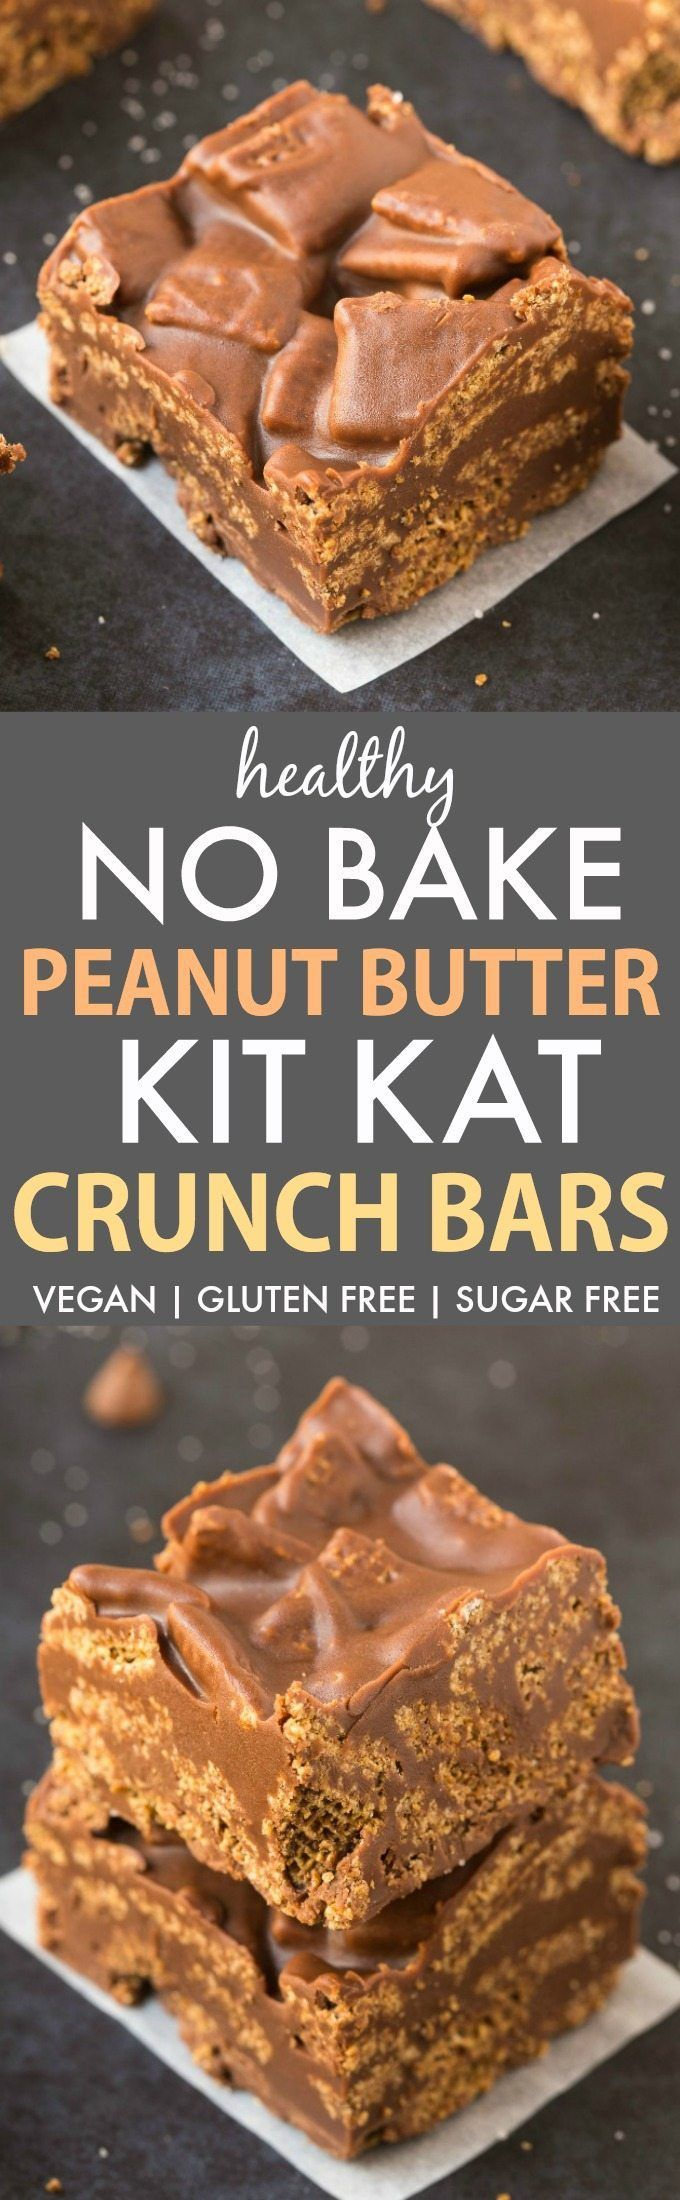 No Bake Peanut Butter Kit Kat Crunch Bars (V, GF, DF)- Easy, fuss-free and delicious, this healthy candy bar copycat combines chex cereal, chocolate and peanut butter in one!